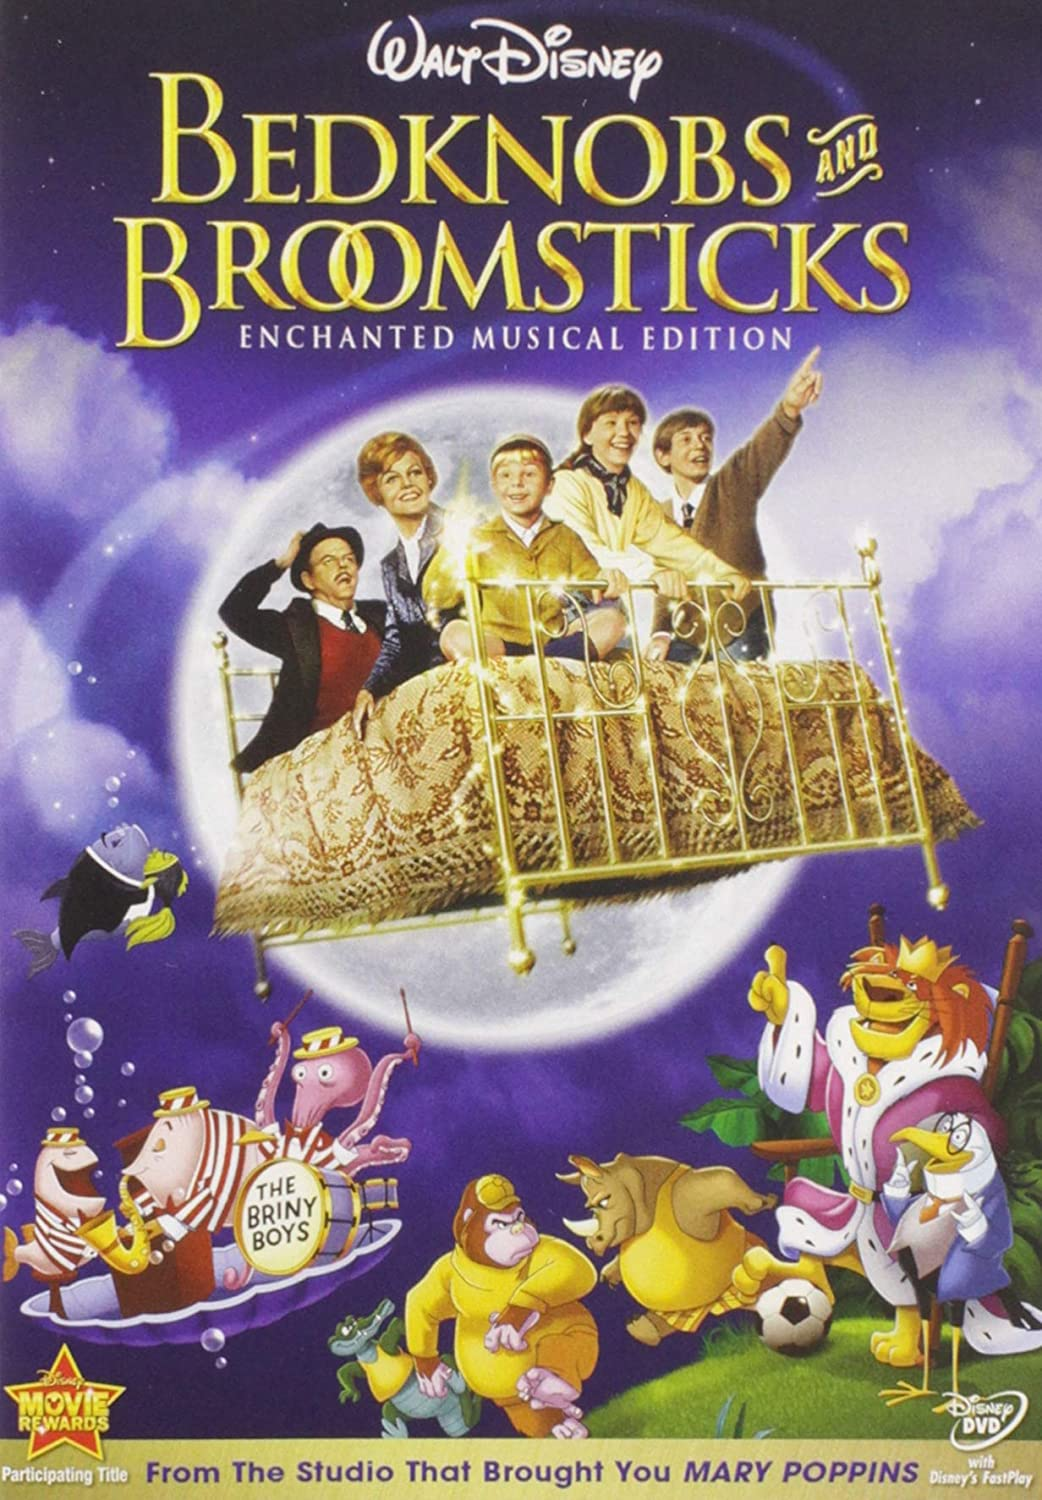 Family Halloween Movies to Watch with Kids: Bedknobs and Broomsticks | The Dating Divas